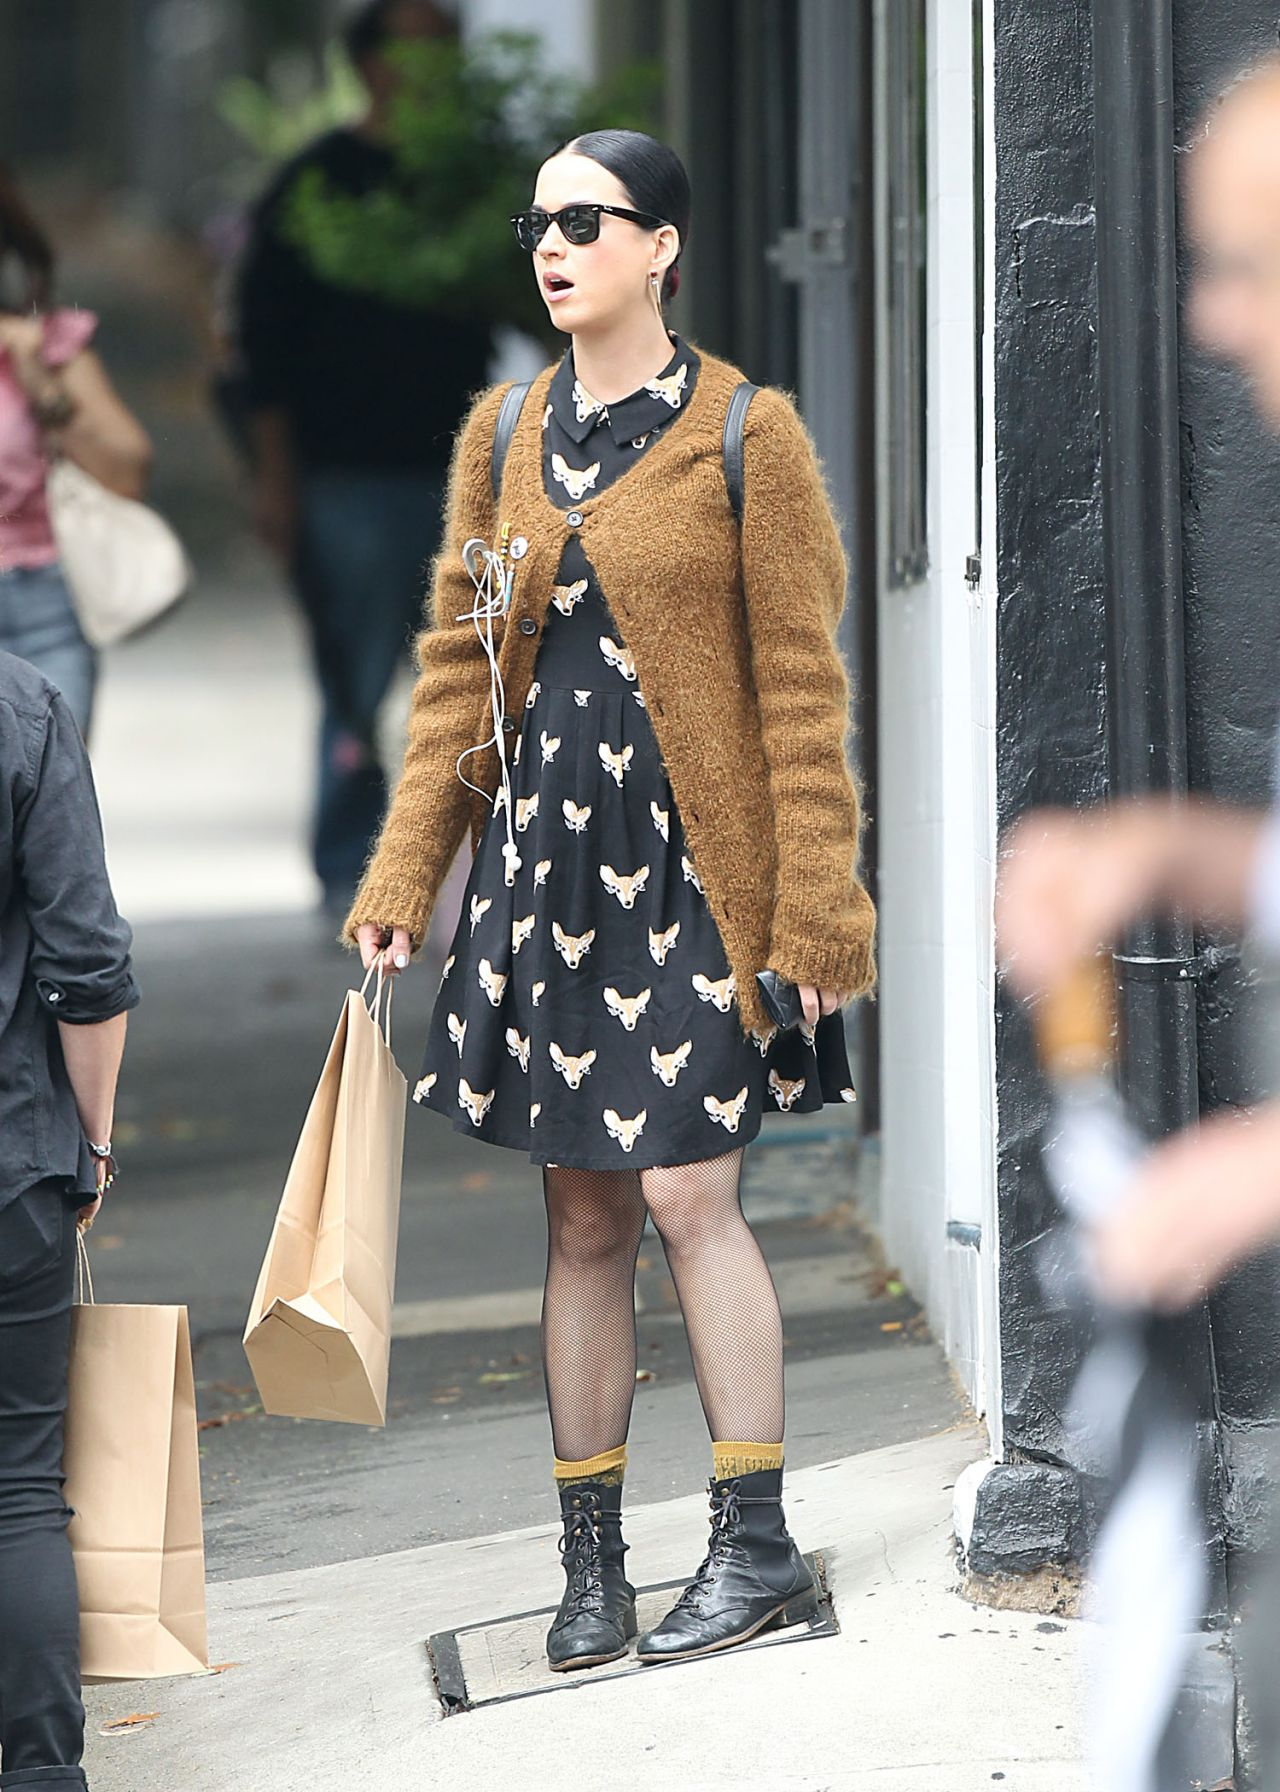 Katy Perry 2015 Celebrity Photos Street Style Shopping In Surry Hills Dec 2014